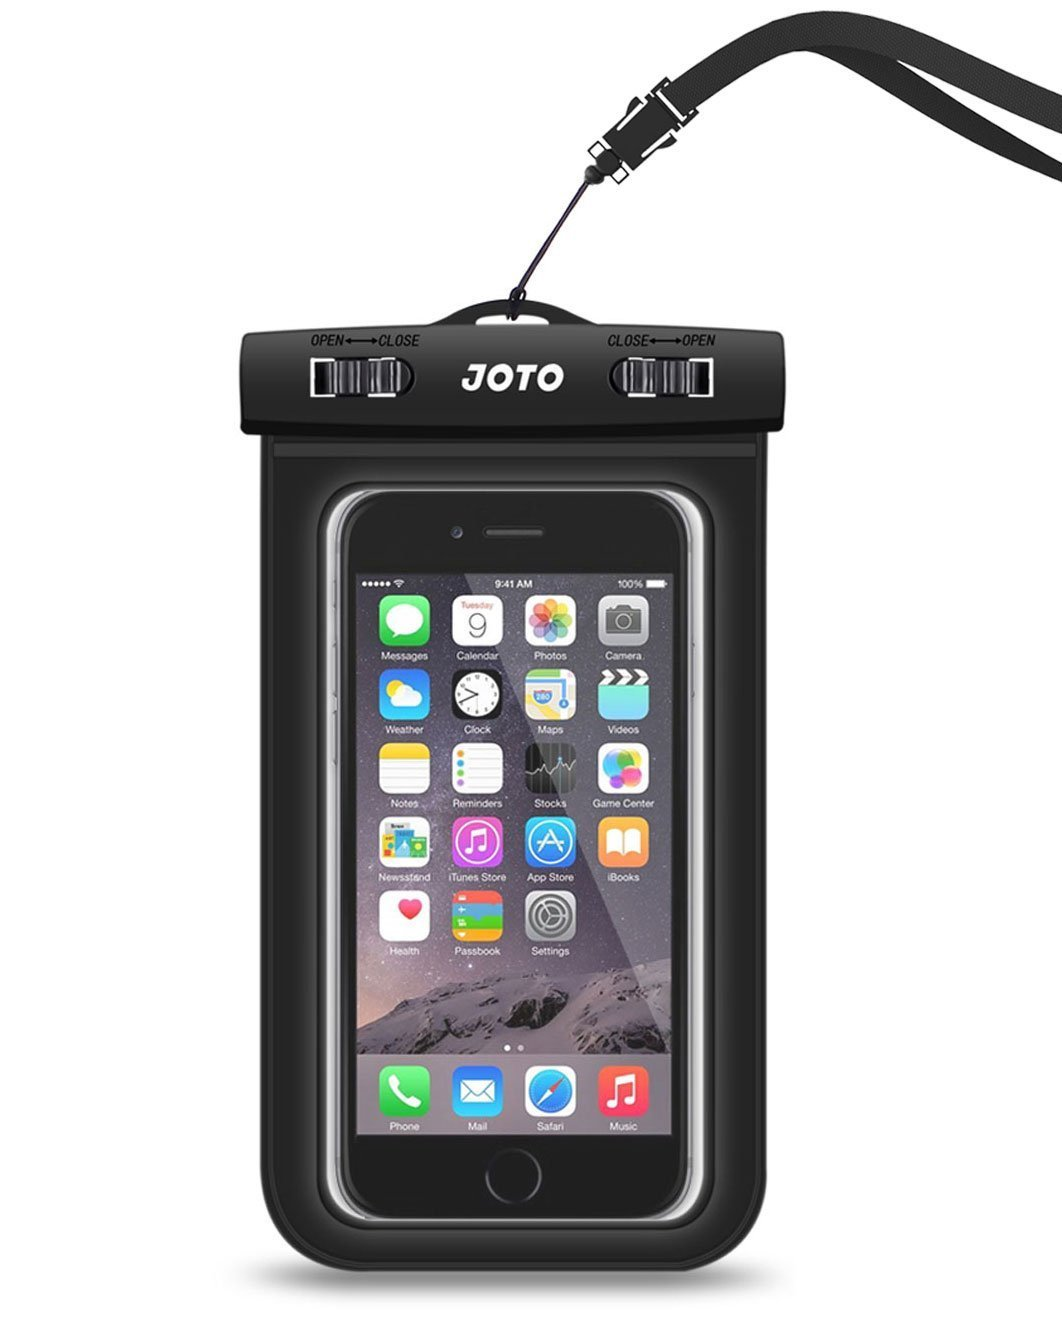 """Universal Waterproof Case, JOTO CellPhone Dry Bag Phone Pouch for iPhone 8/7/7 Plus/6S/6/6S Plus/SE/5S, Samsung Galaxy S8/S8 Plus/Note 8 6 5 4, Google Pixel 2 HTC LG Sony MOTO up to 6.0"""" -Black"""